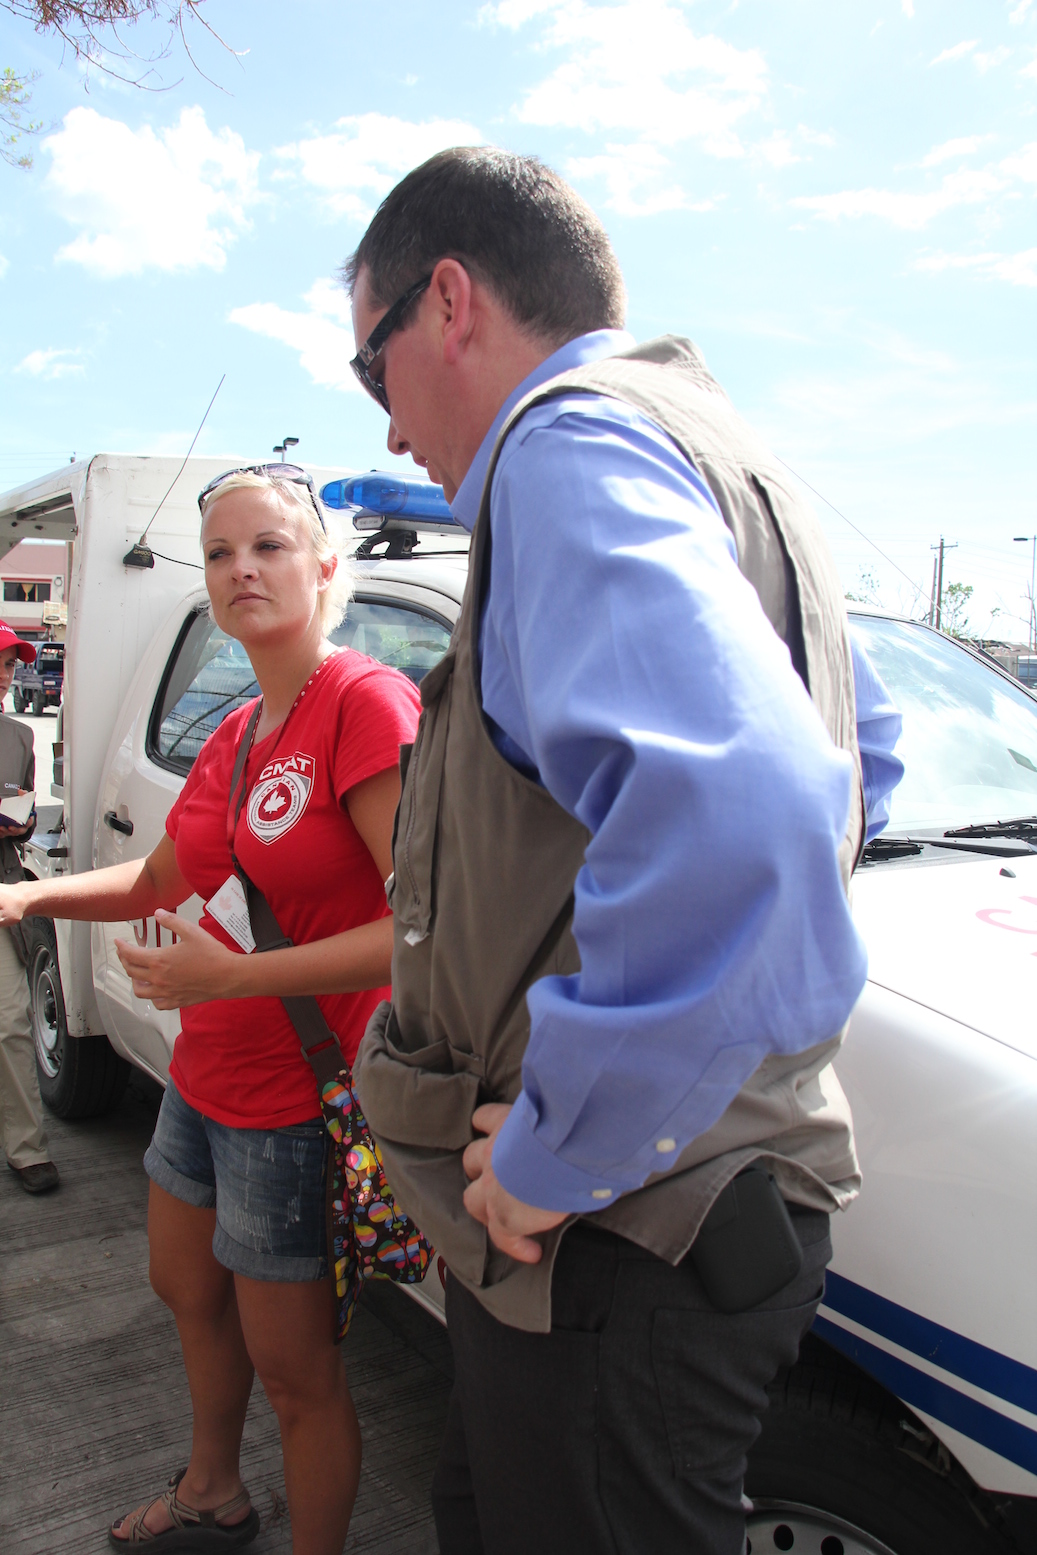 CMAT Team Leader Kate Auger briefs Minister Paradis on CMAT's relief efforts in Ormoc City, Leyte.